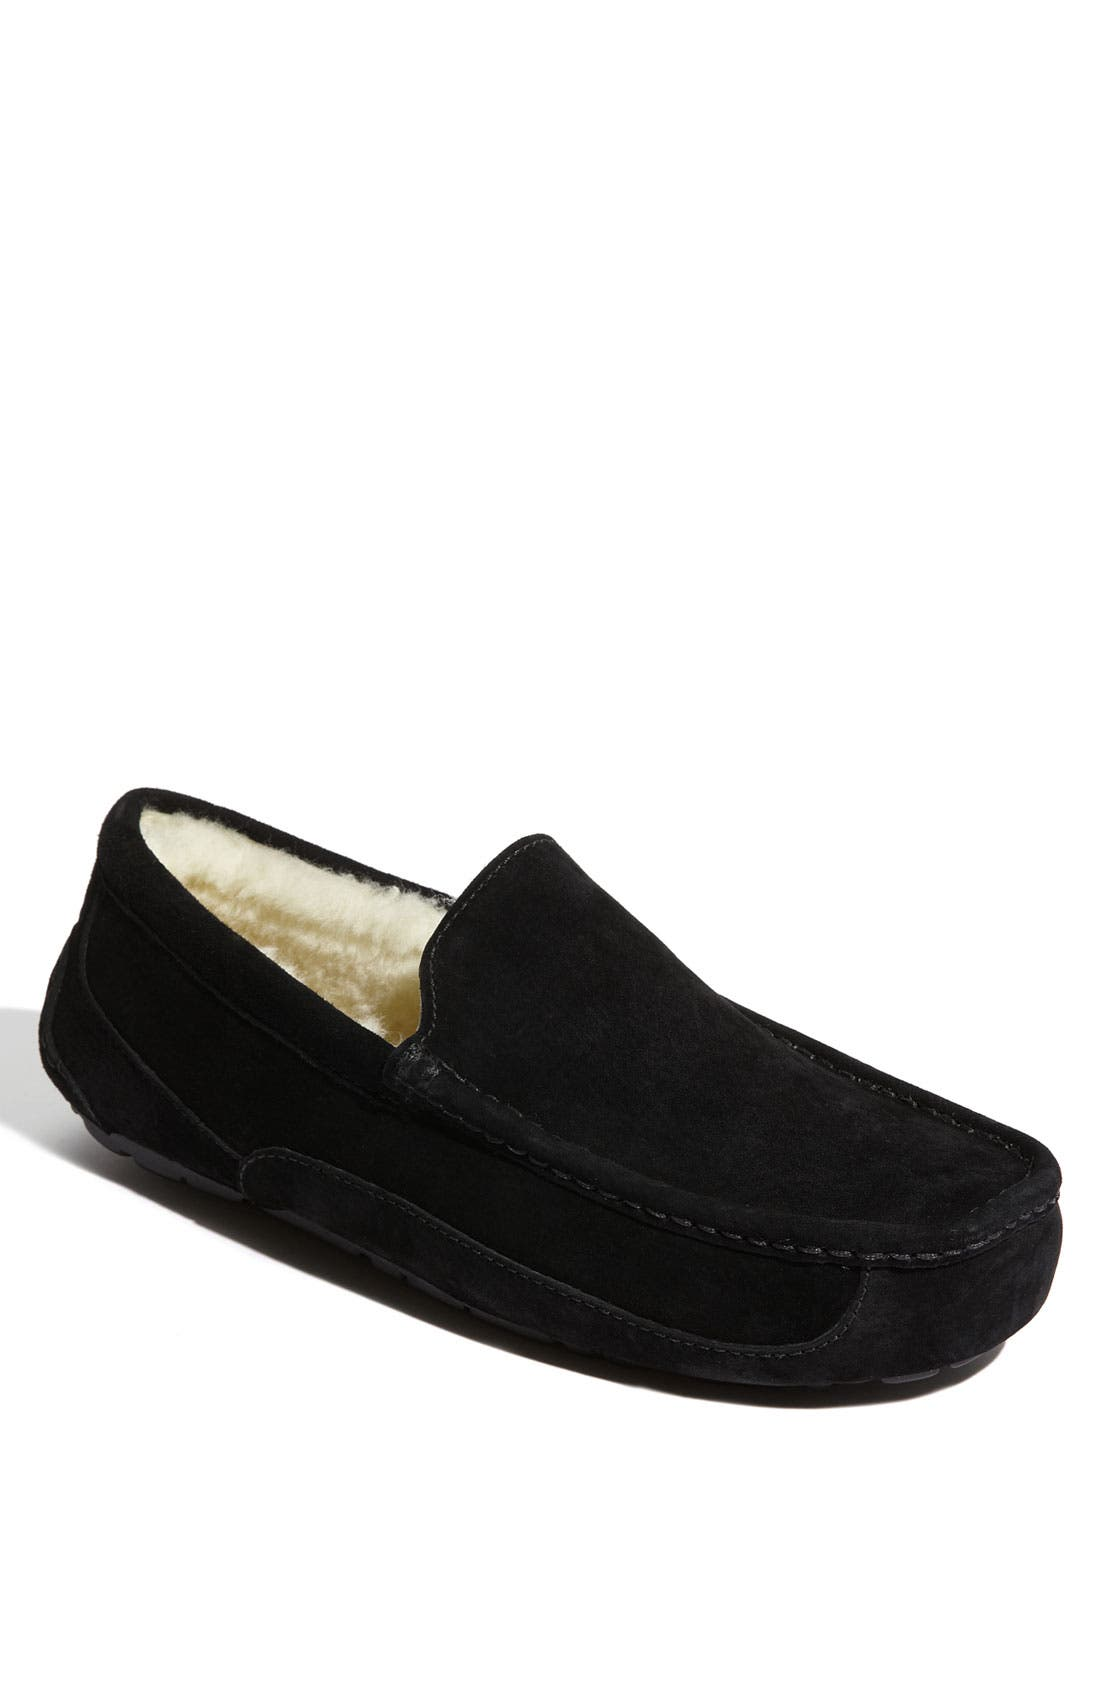 UGG<SUP>®</SUP> Ascot Suede Slipper, Main, color, BLACK SUEDE